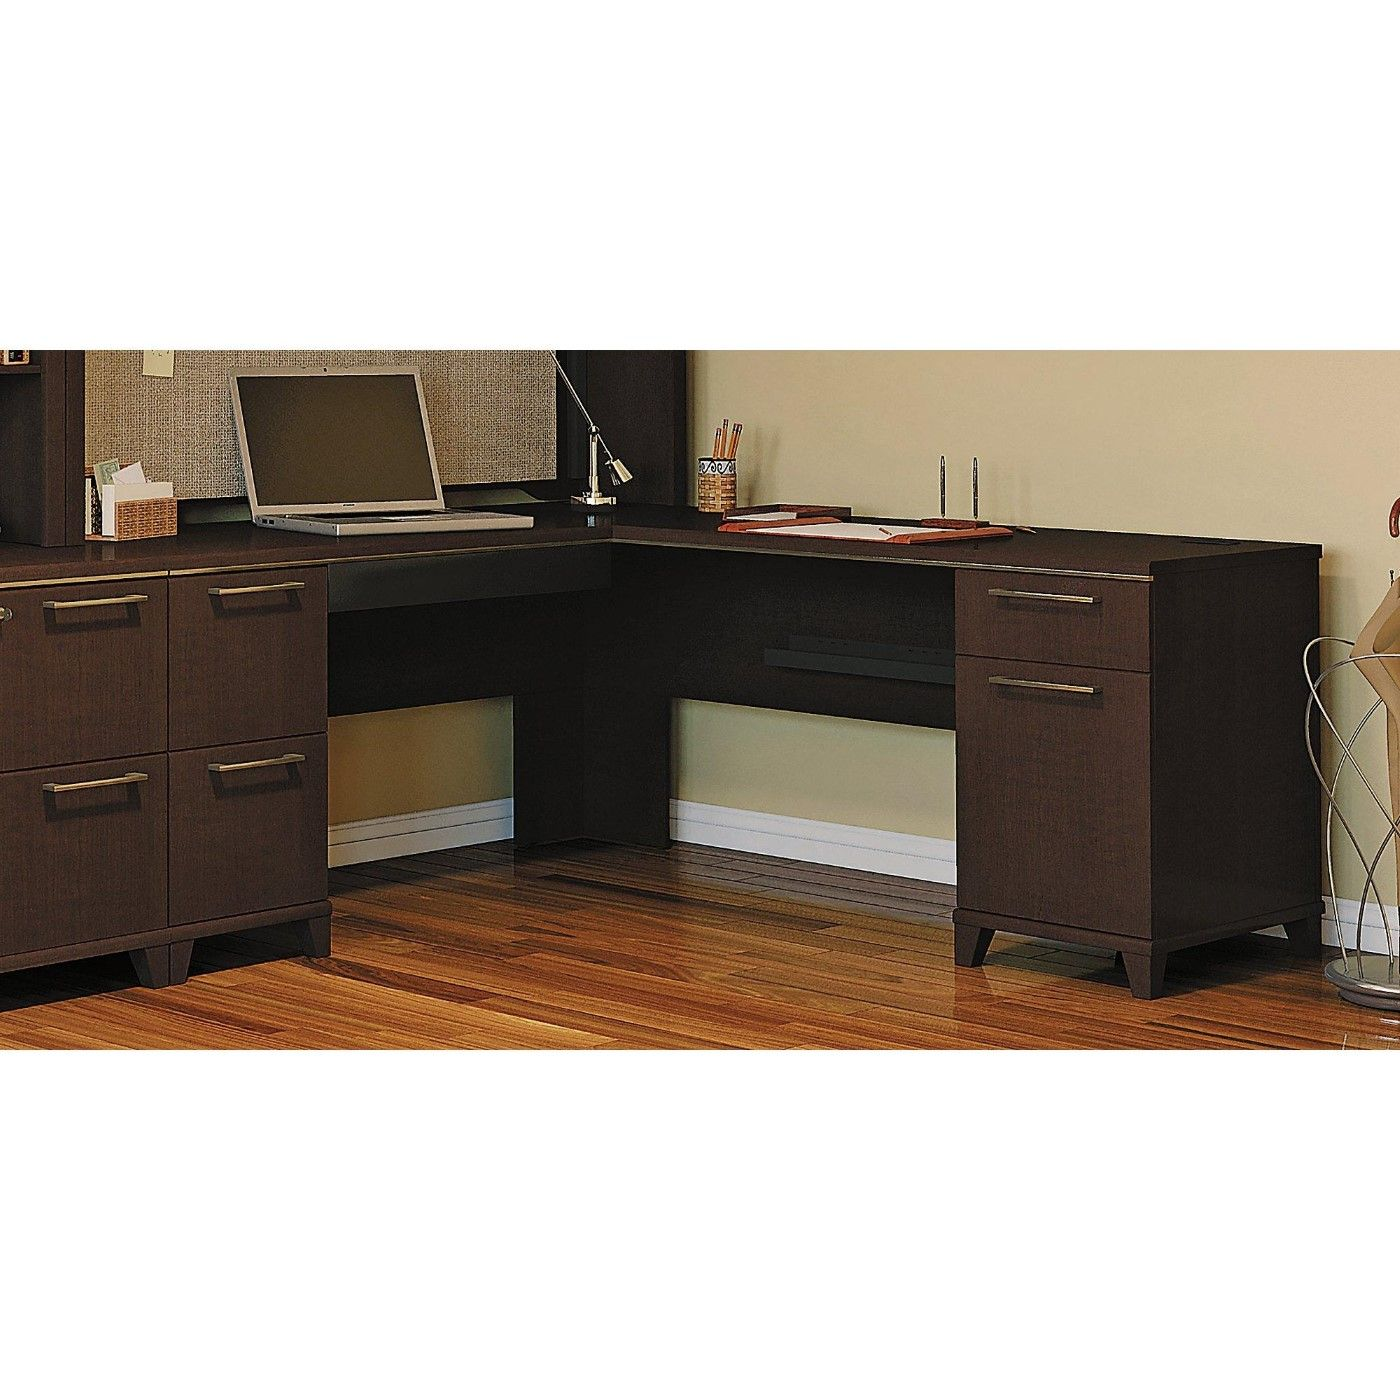 <font color=#c60><b>BUSH BUSINESS FURNITURE ENTERPRISE MOCHA CHERRY 72W x 72D L-SHAPED DESK #EH-2910MC-03K. FREE SHIPPING:</font></b></font></b>